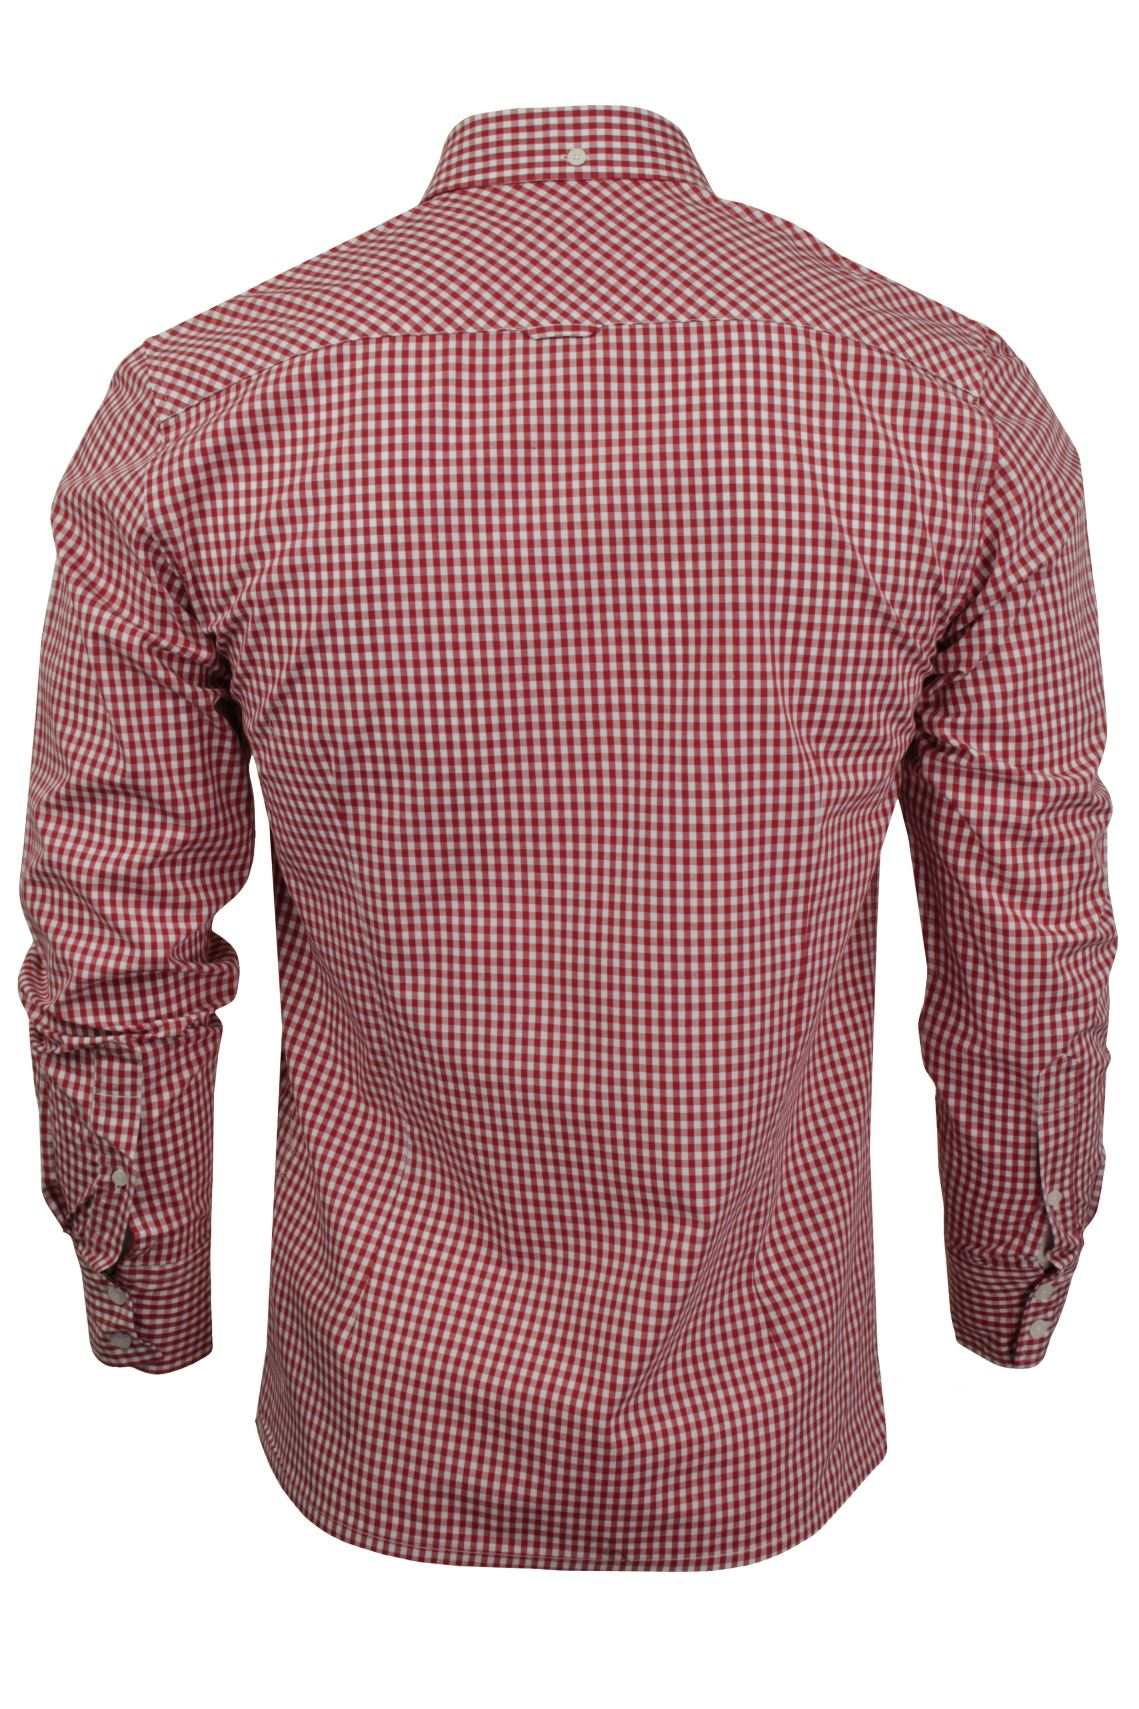 Mens Long Sleeved Gingham Shirt by Merc London 'Japster'_03_1506215Japster_Blood